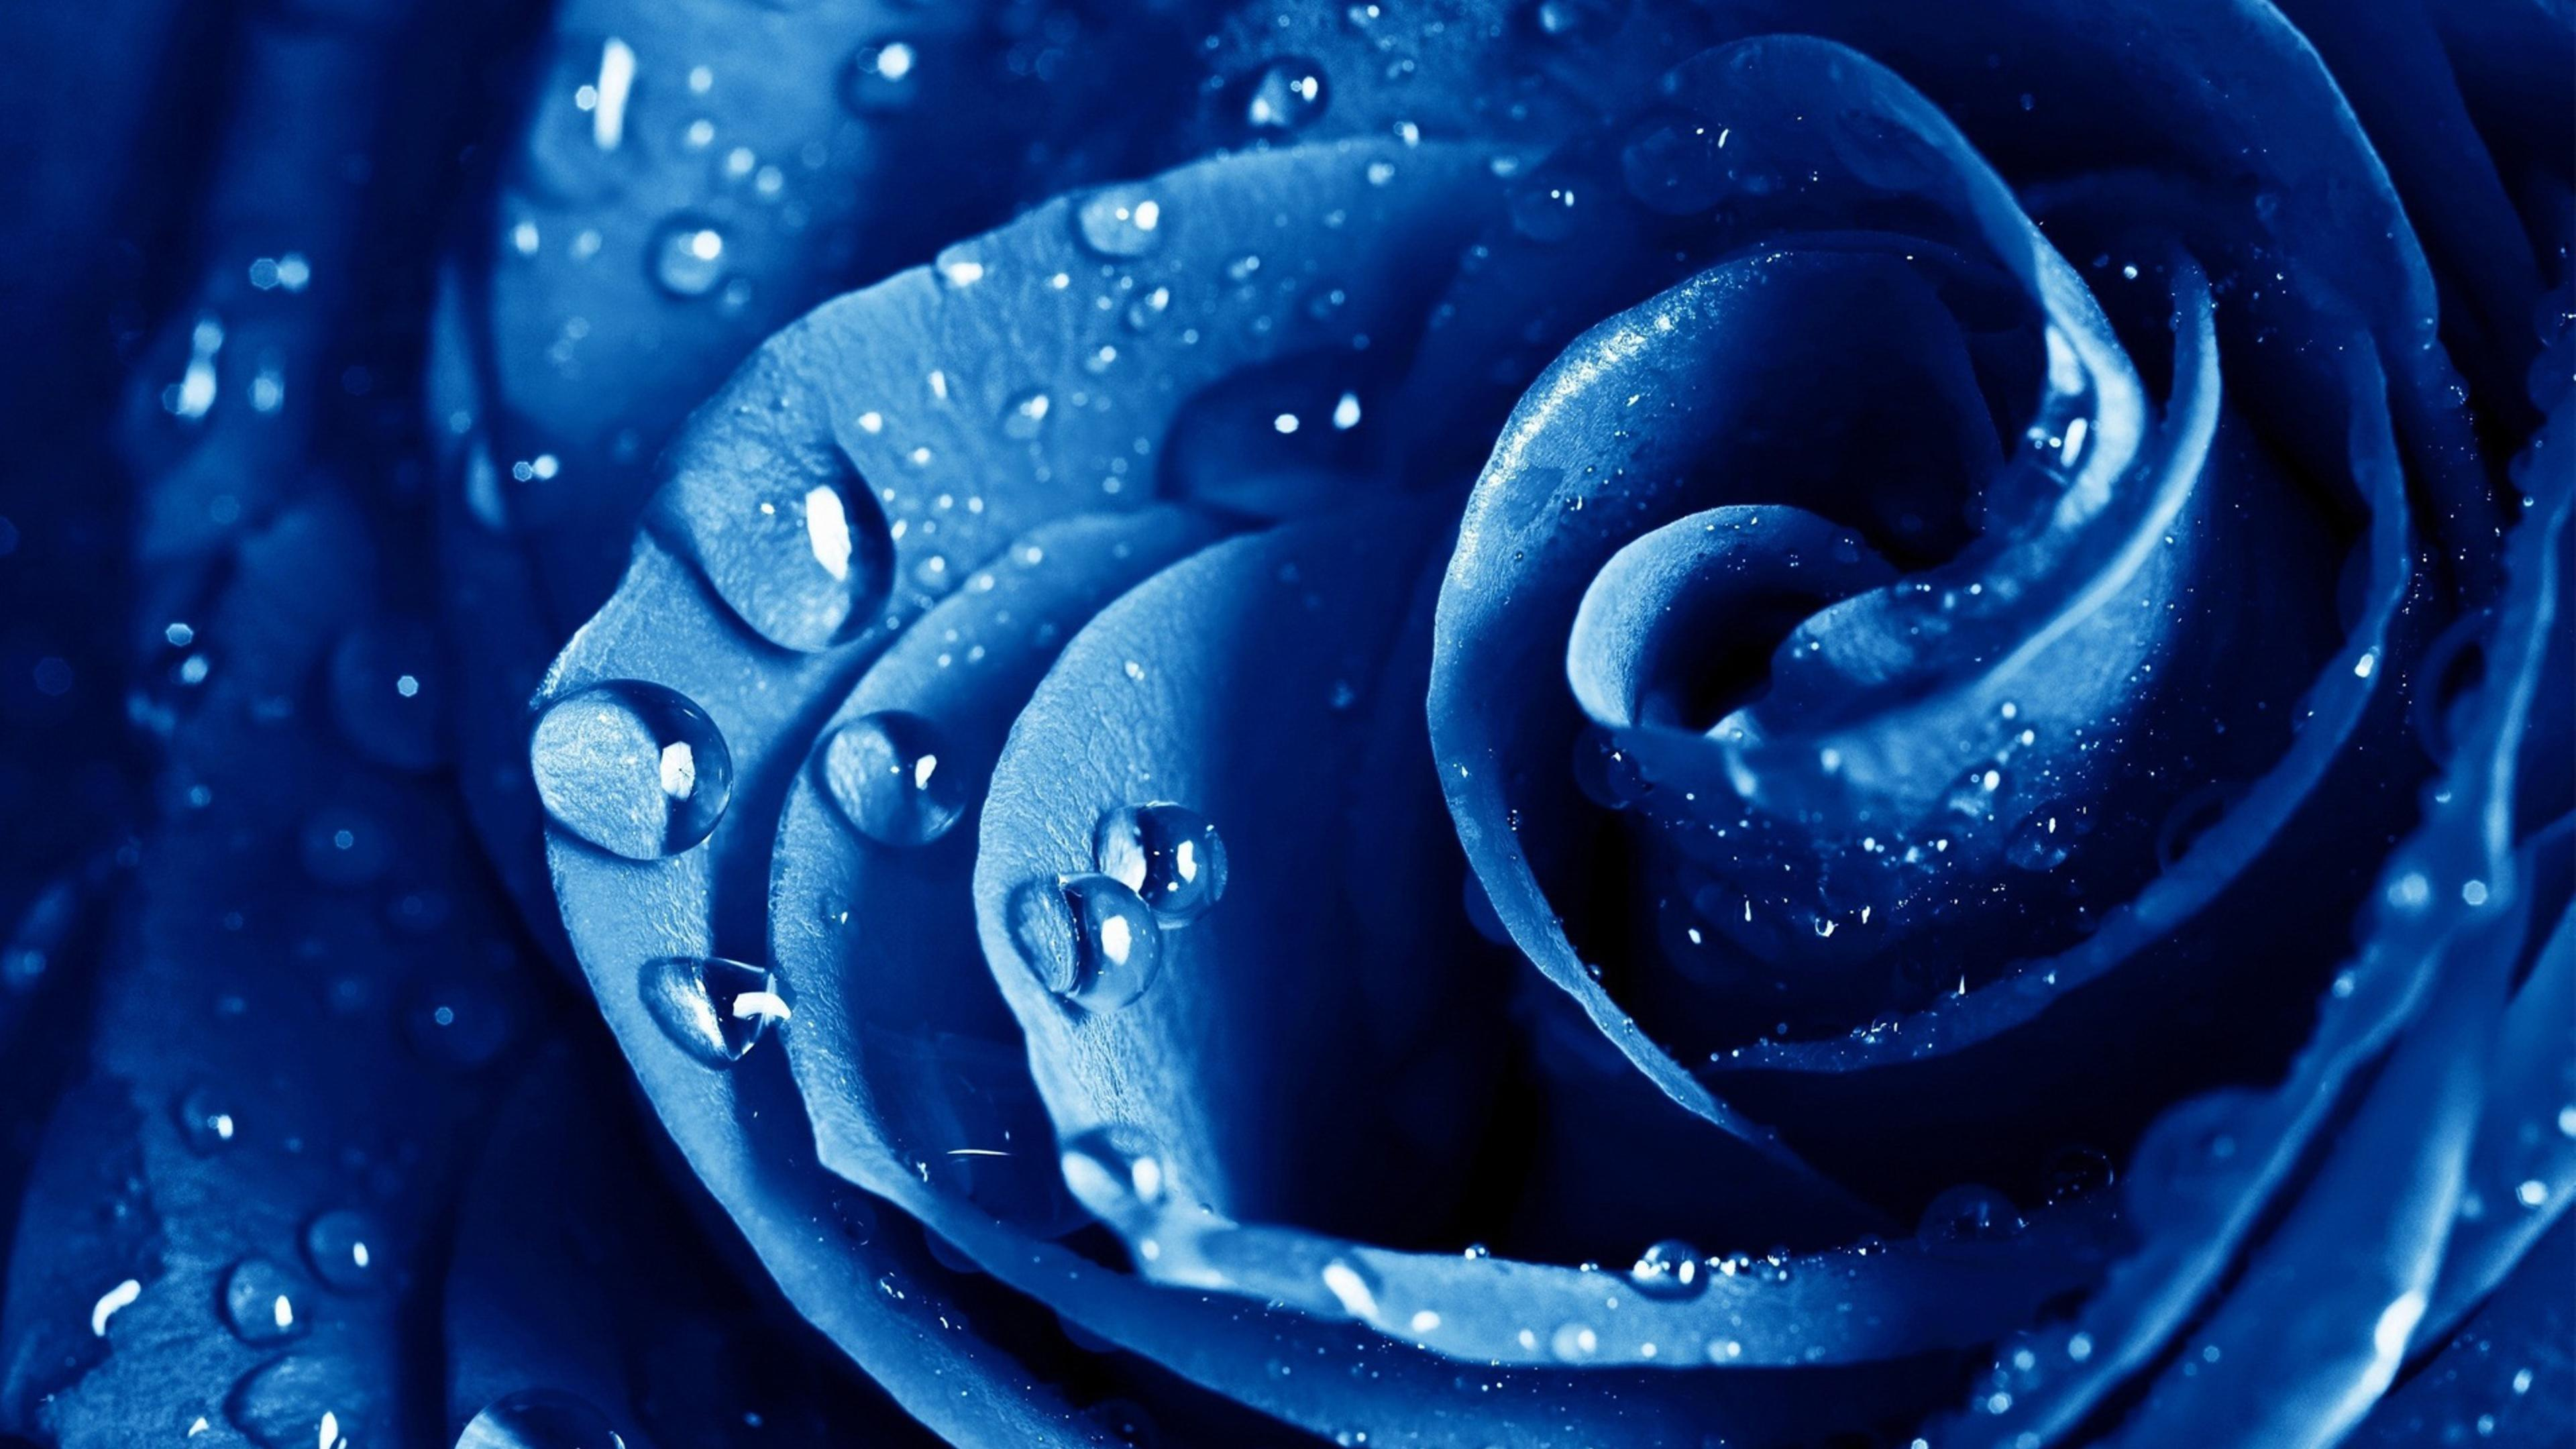 Fresh blue rose with rain drops wallpaper download 3840x2160 altavistaventures